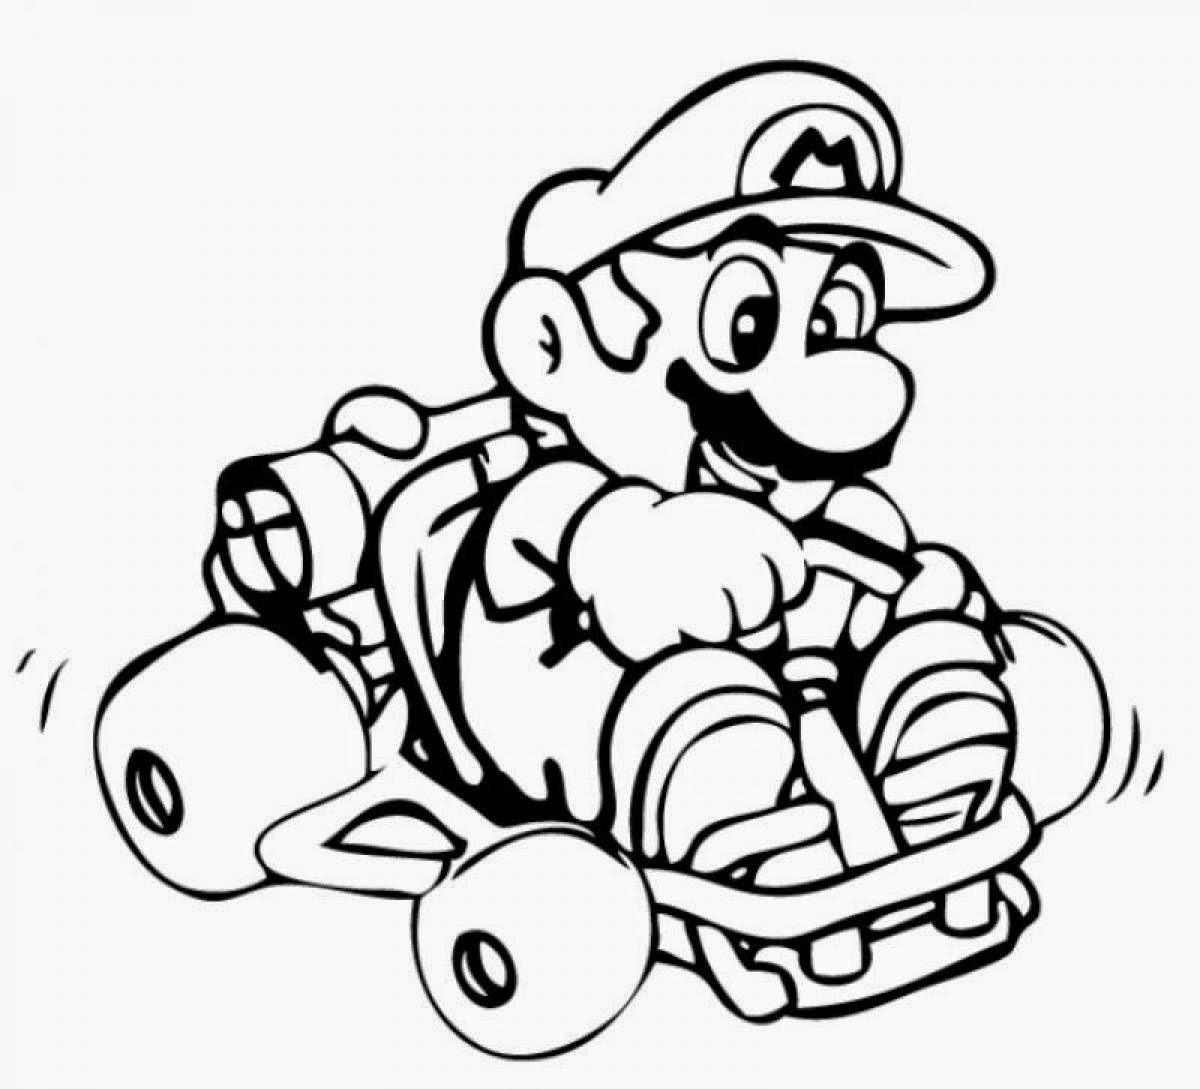 mario bro coloring pages coloring pages mario coloring pages free and printable bro coloring mario pages